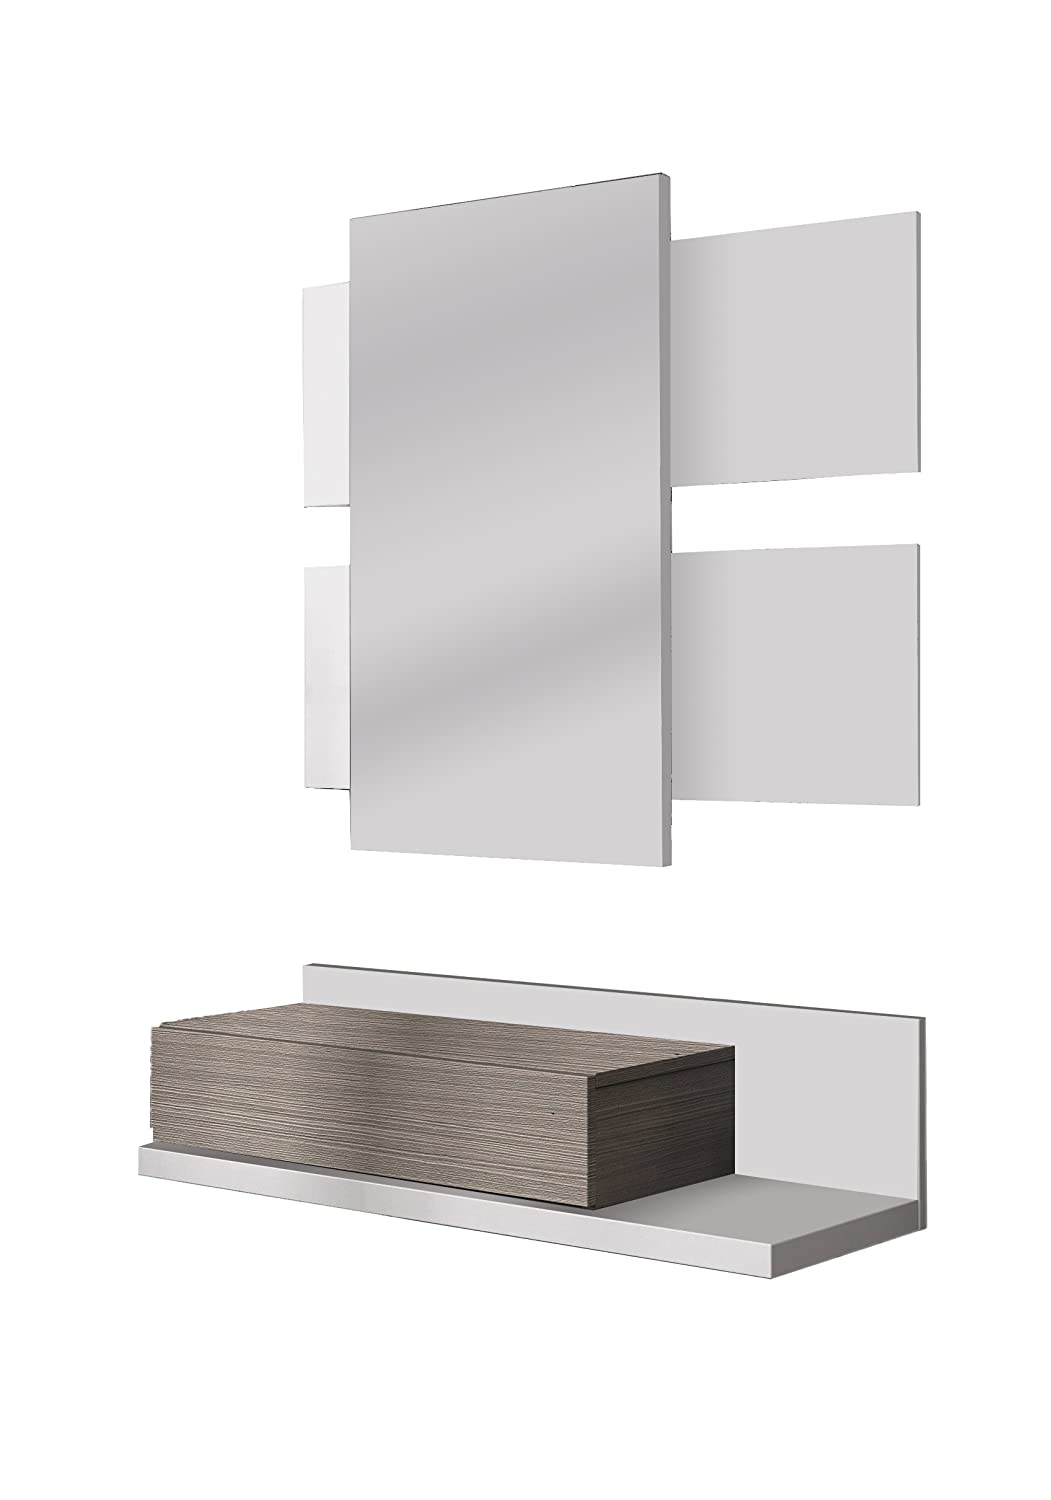 Habitdesign 0b6742bo – Receiver with Drawer + Mirror, Gloss White and Ash, Measures: 75 x 116 x 29 cm Deep F00532001026